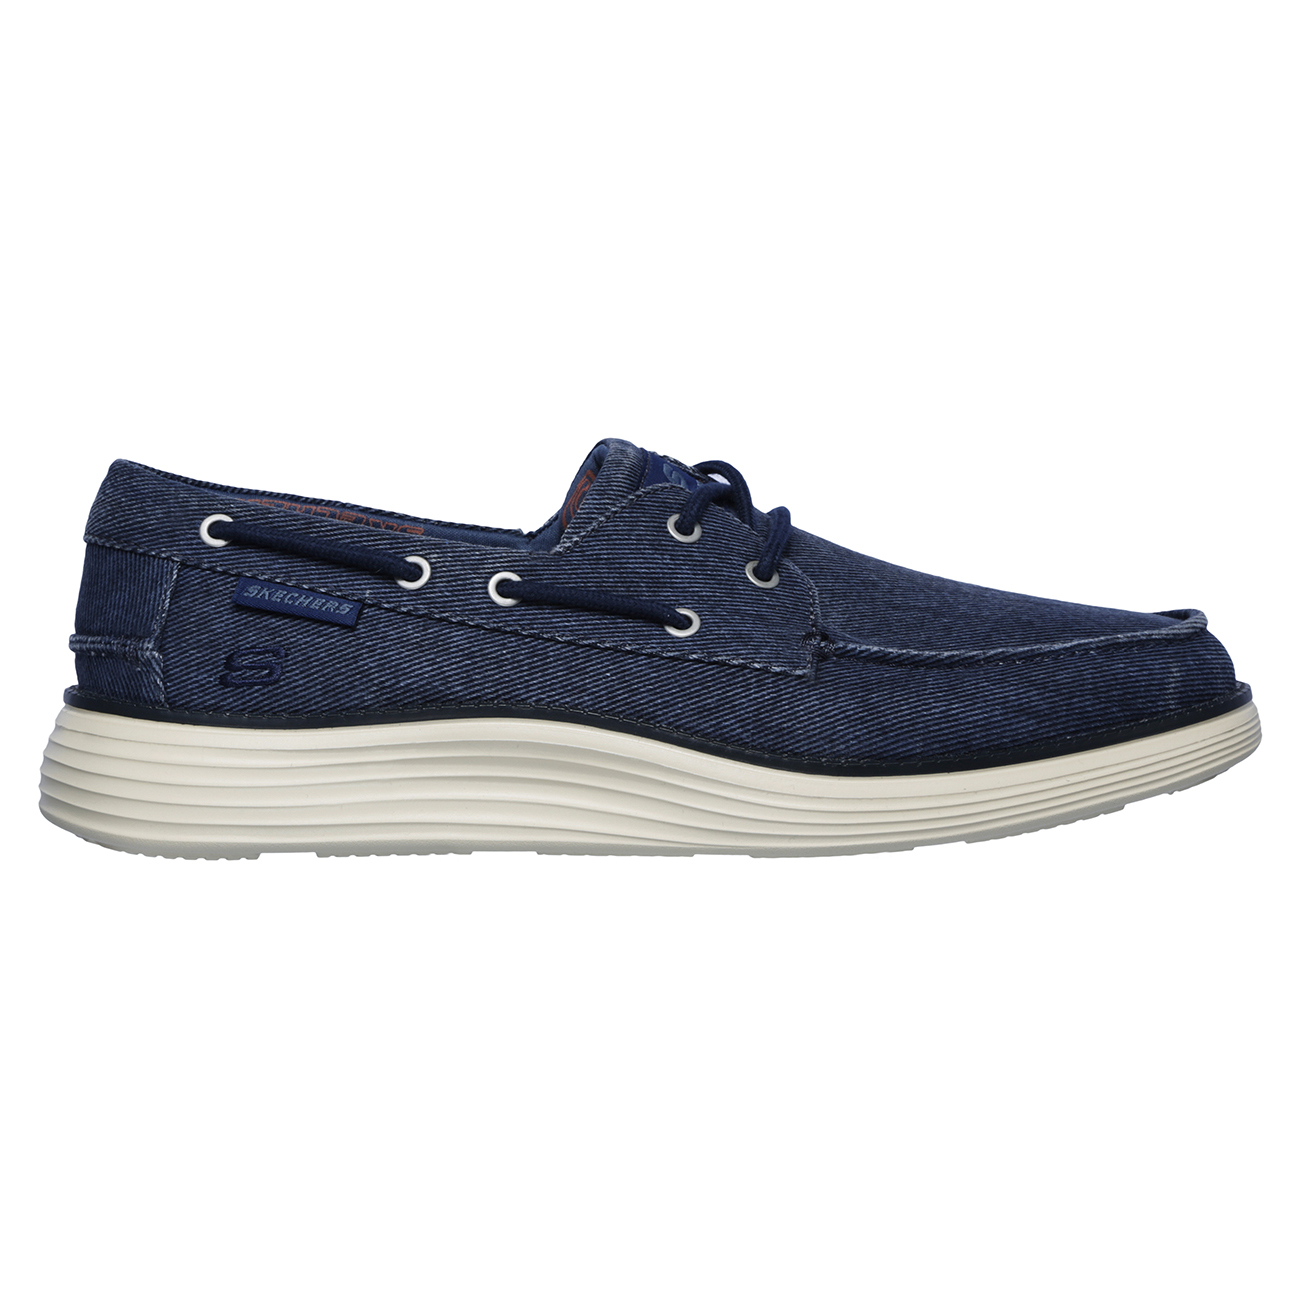 Details about Mens Skechers Status 2.0 Lorano Moccasin Lightweight Memory Foam Shoes UK 7 13